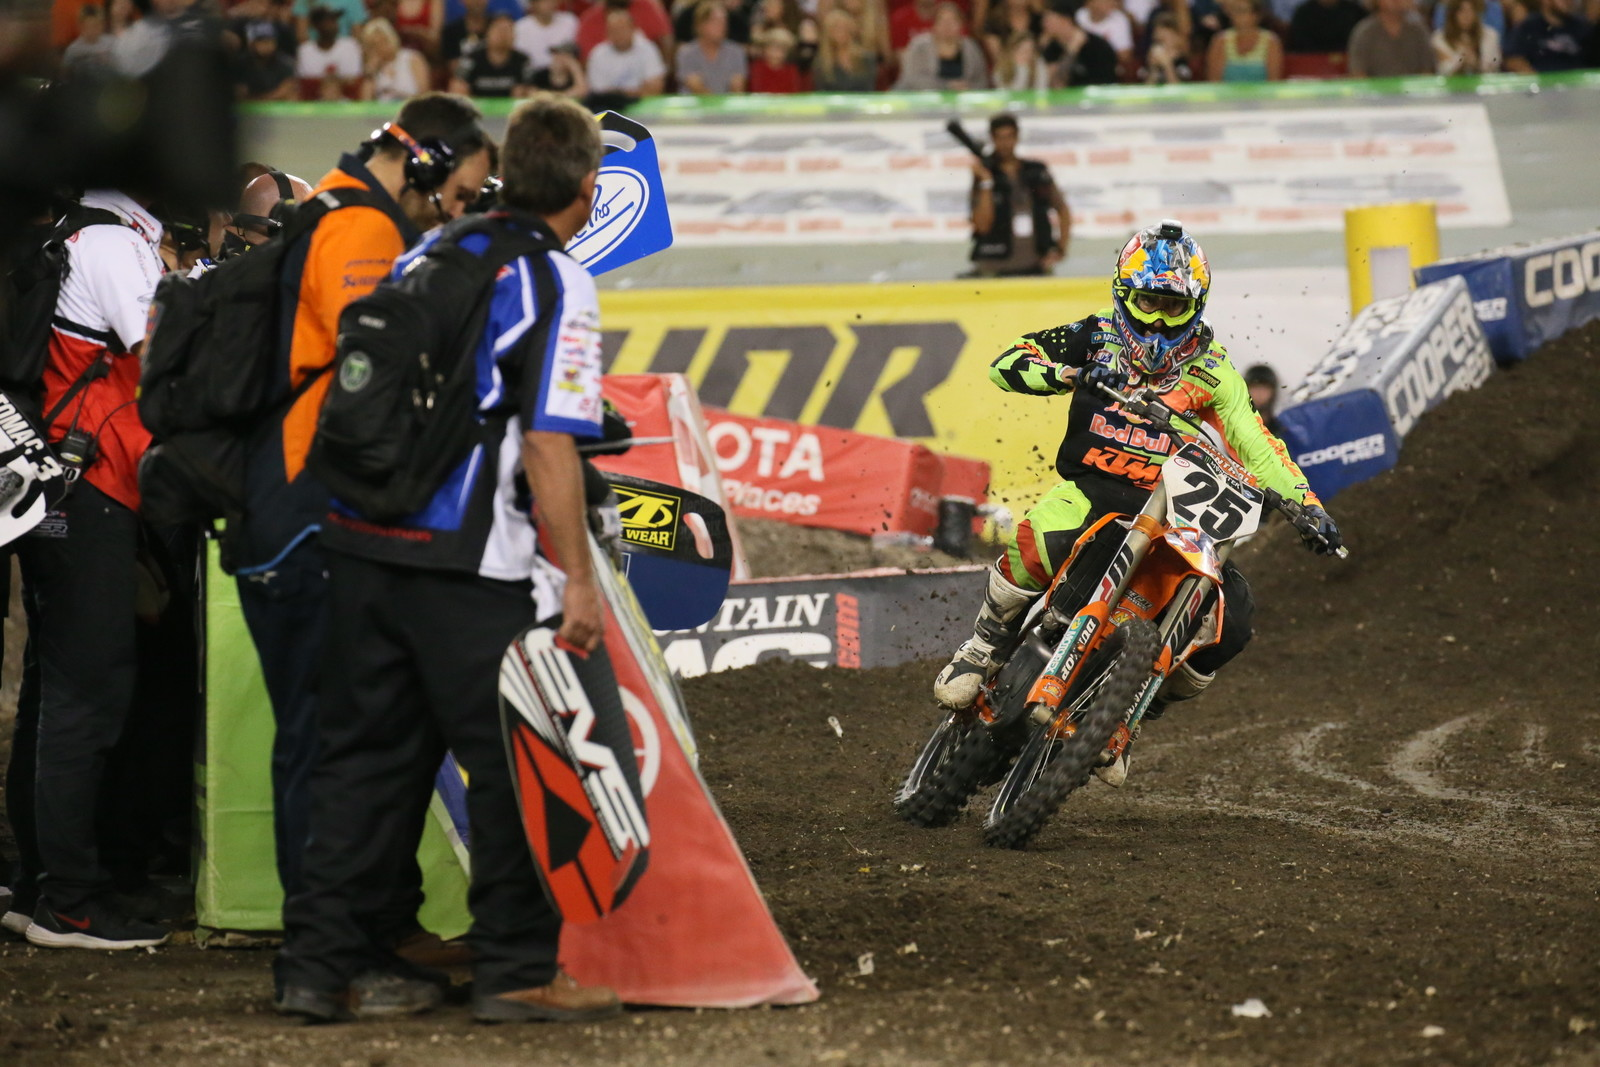 Marvin Musquin led for a large chunk of the Main Event before getting passed by Eli Tomac.